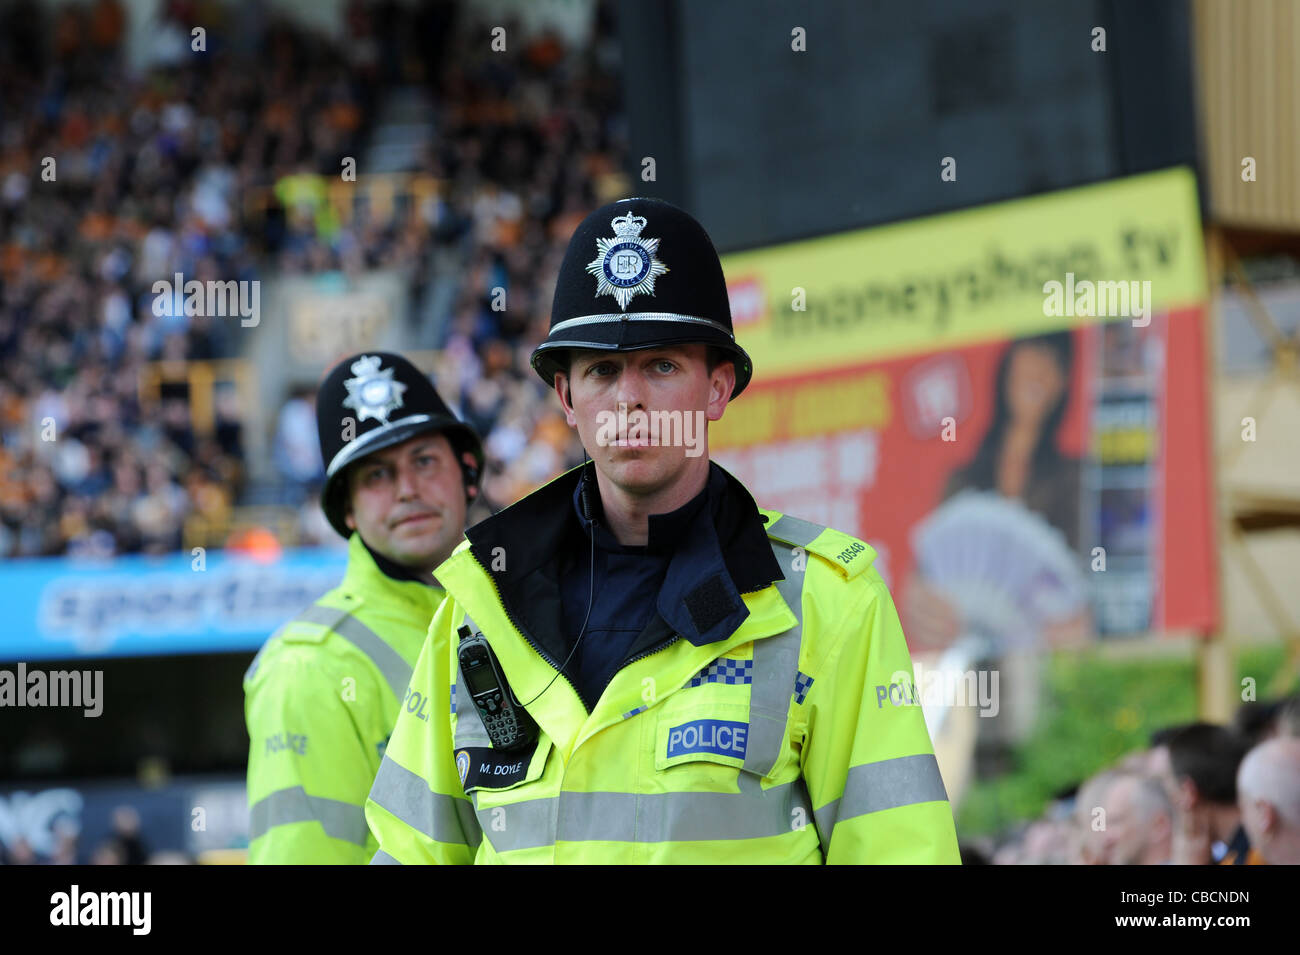 Male police officers at football match Uk - Stock Image